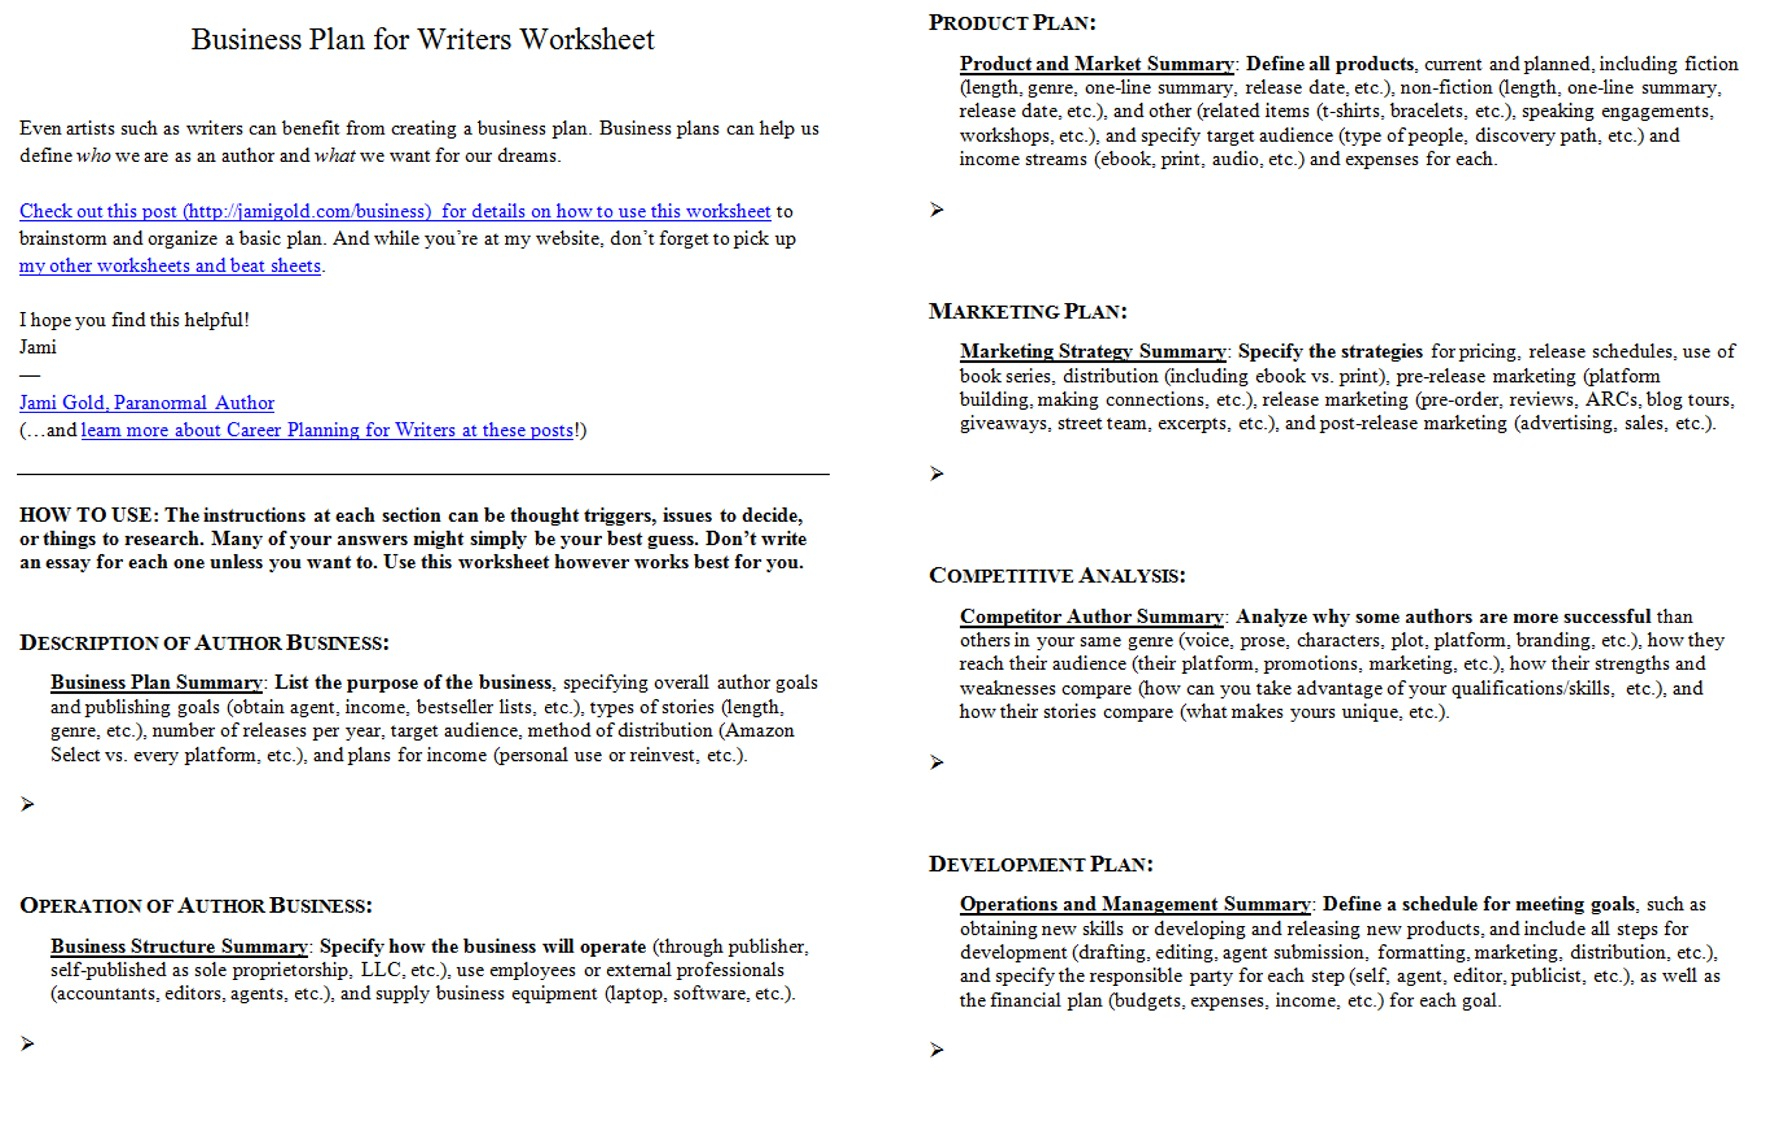 Aldiablosus  Splendid Worksheets For Writers  Jami Gold Paranormal Author With Marvelous Screen Shot Of Both Pages Of The Business Plan For Writers Worksheet With Amusing Rounding To The Nearest Hundredth Worksheet Also Super Teacher Worksheets Maths In Addition Ee Phonics Worksheets And Up And Down Worksheets As Well As Superlative Adjectives Worksheet Additionally Money Sums Worksheets From Jamigoldcom With Aldiablosus  Marvelous Worksheets For Writers  Jami Gold Paranormal Author With Amusing Screen Shot Of Both Pages Of The Business Plan For Writers Worksheet And Splendid Rounding To The Nearest Hundredth Worksheet Also Super Teacher Worksheets Maths In Addition Ee Phonics Worksheets From Jamigoldcom